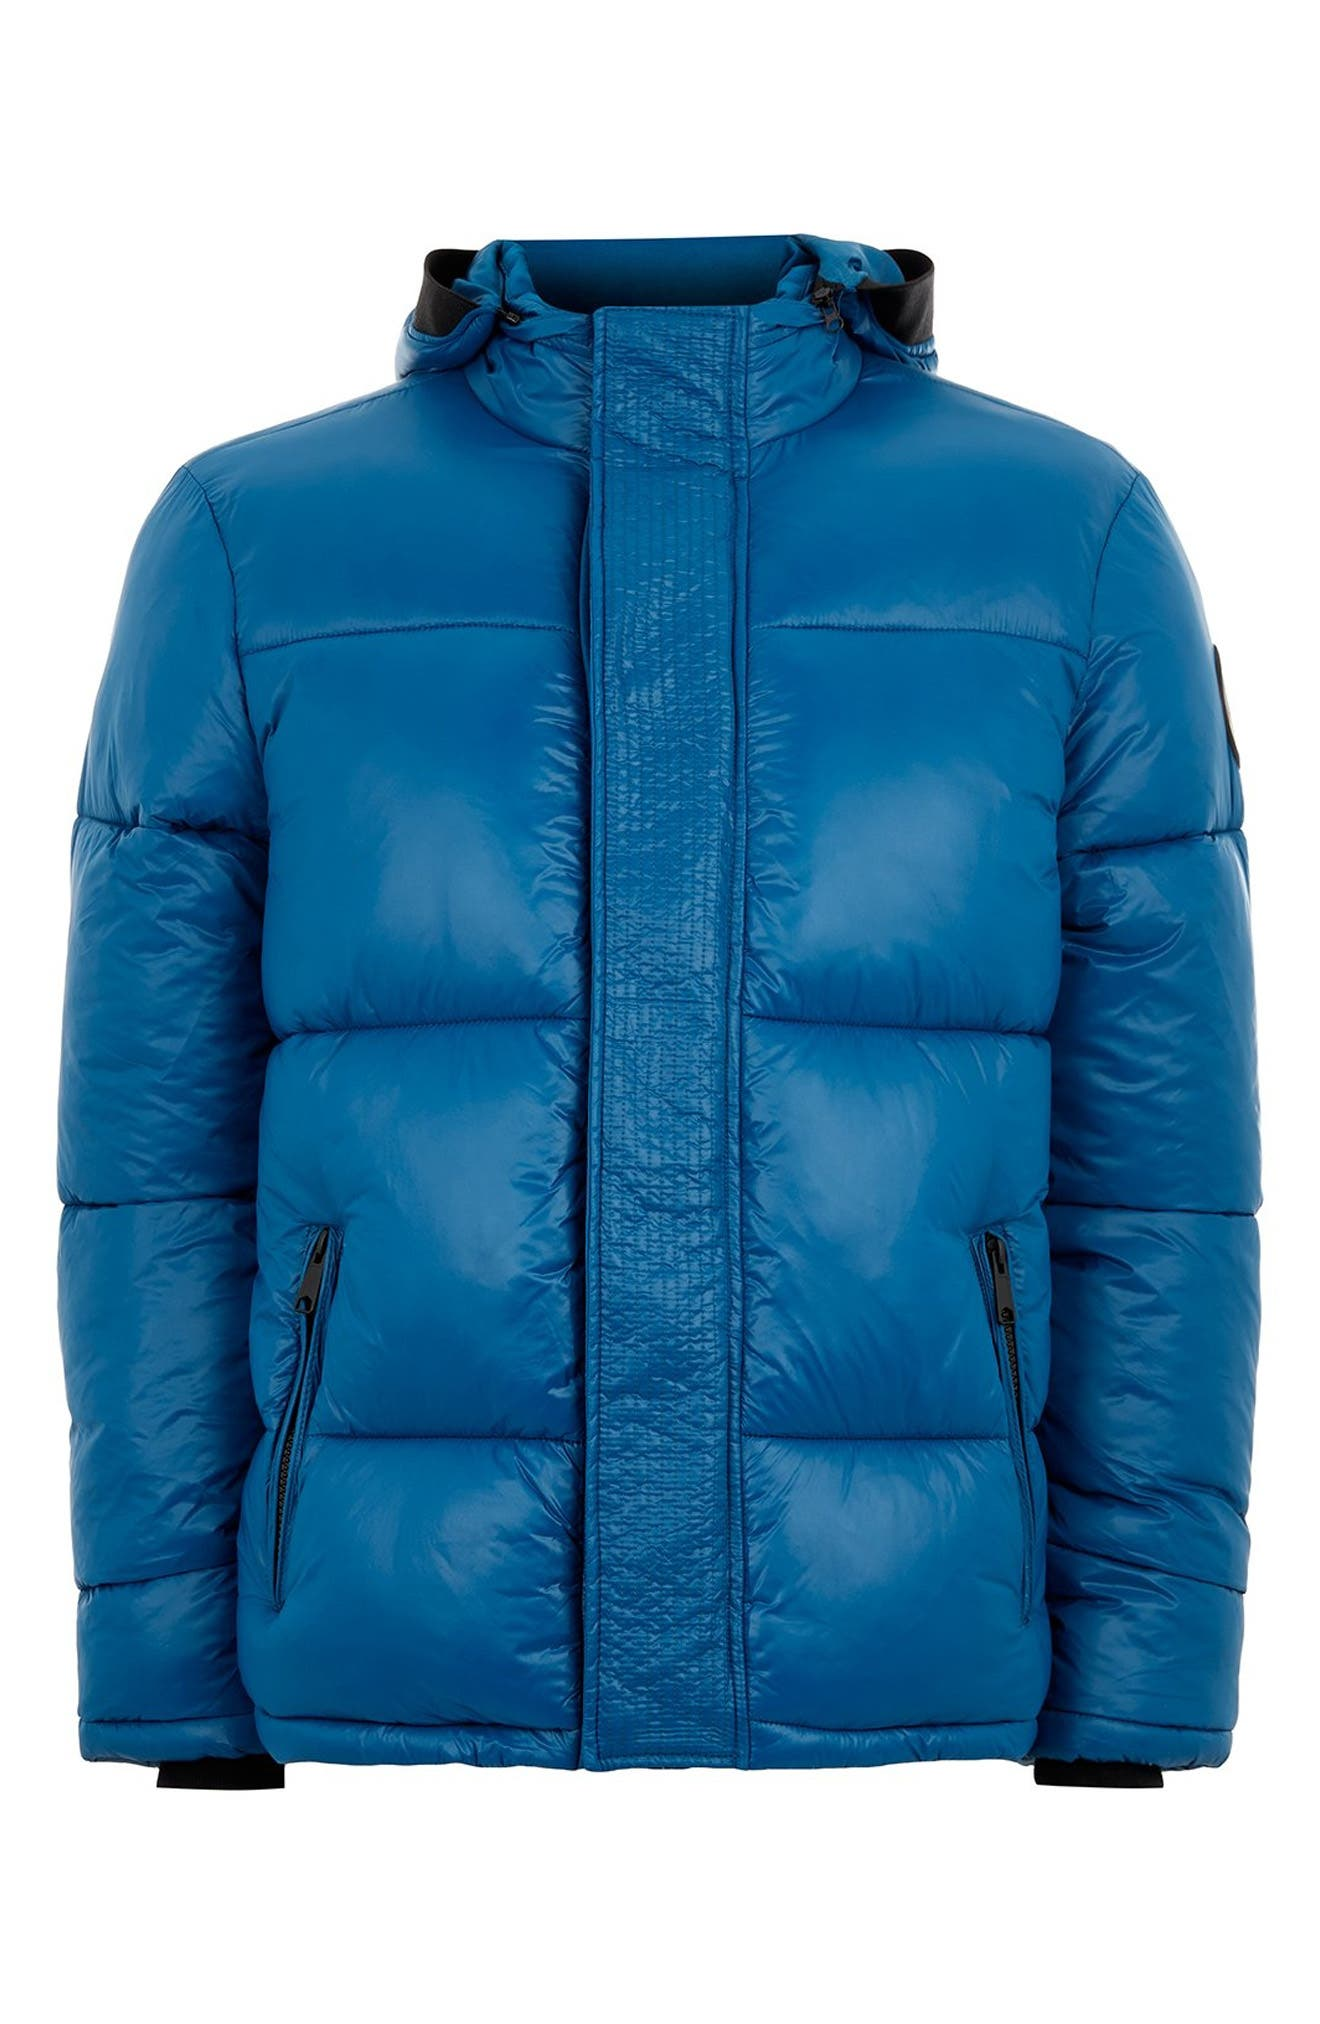 Puffer Jacket,                             Alternate thumbnail 4, color,                             401